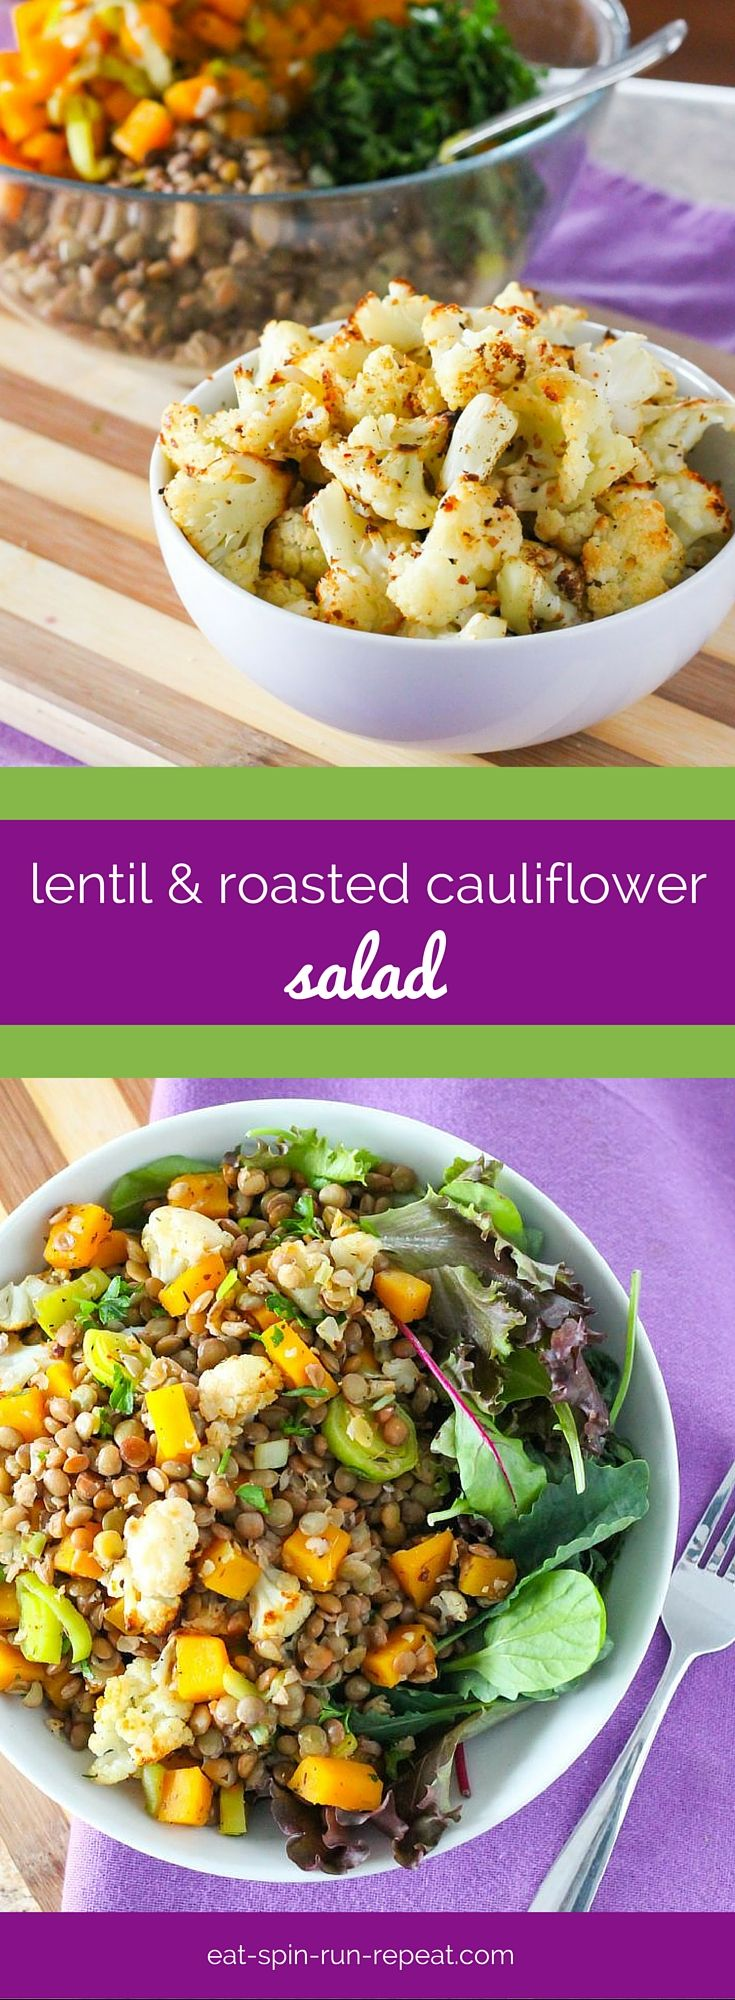 28 best high in iron images on pinterest high iron foods iron lentil and roasted cauliflower salad recipes high in ironmeals forumfinder Image collections